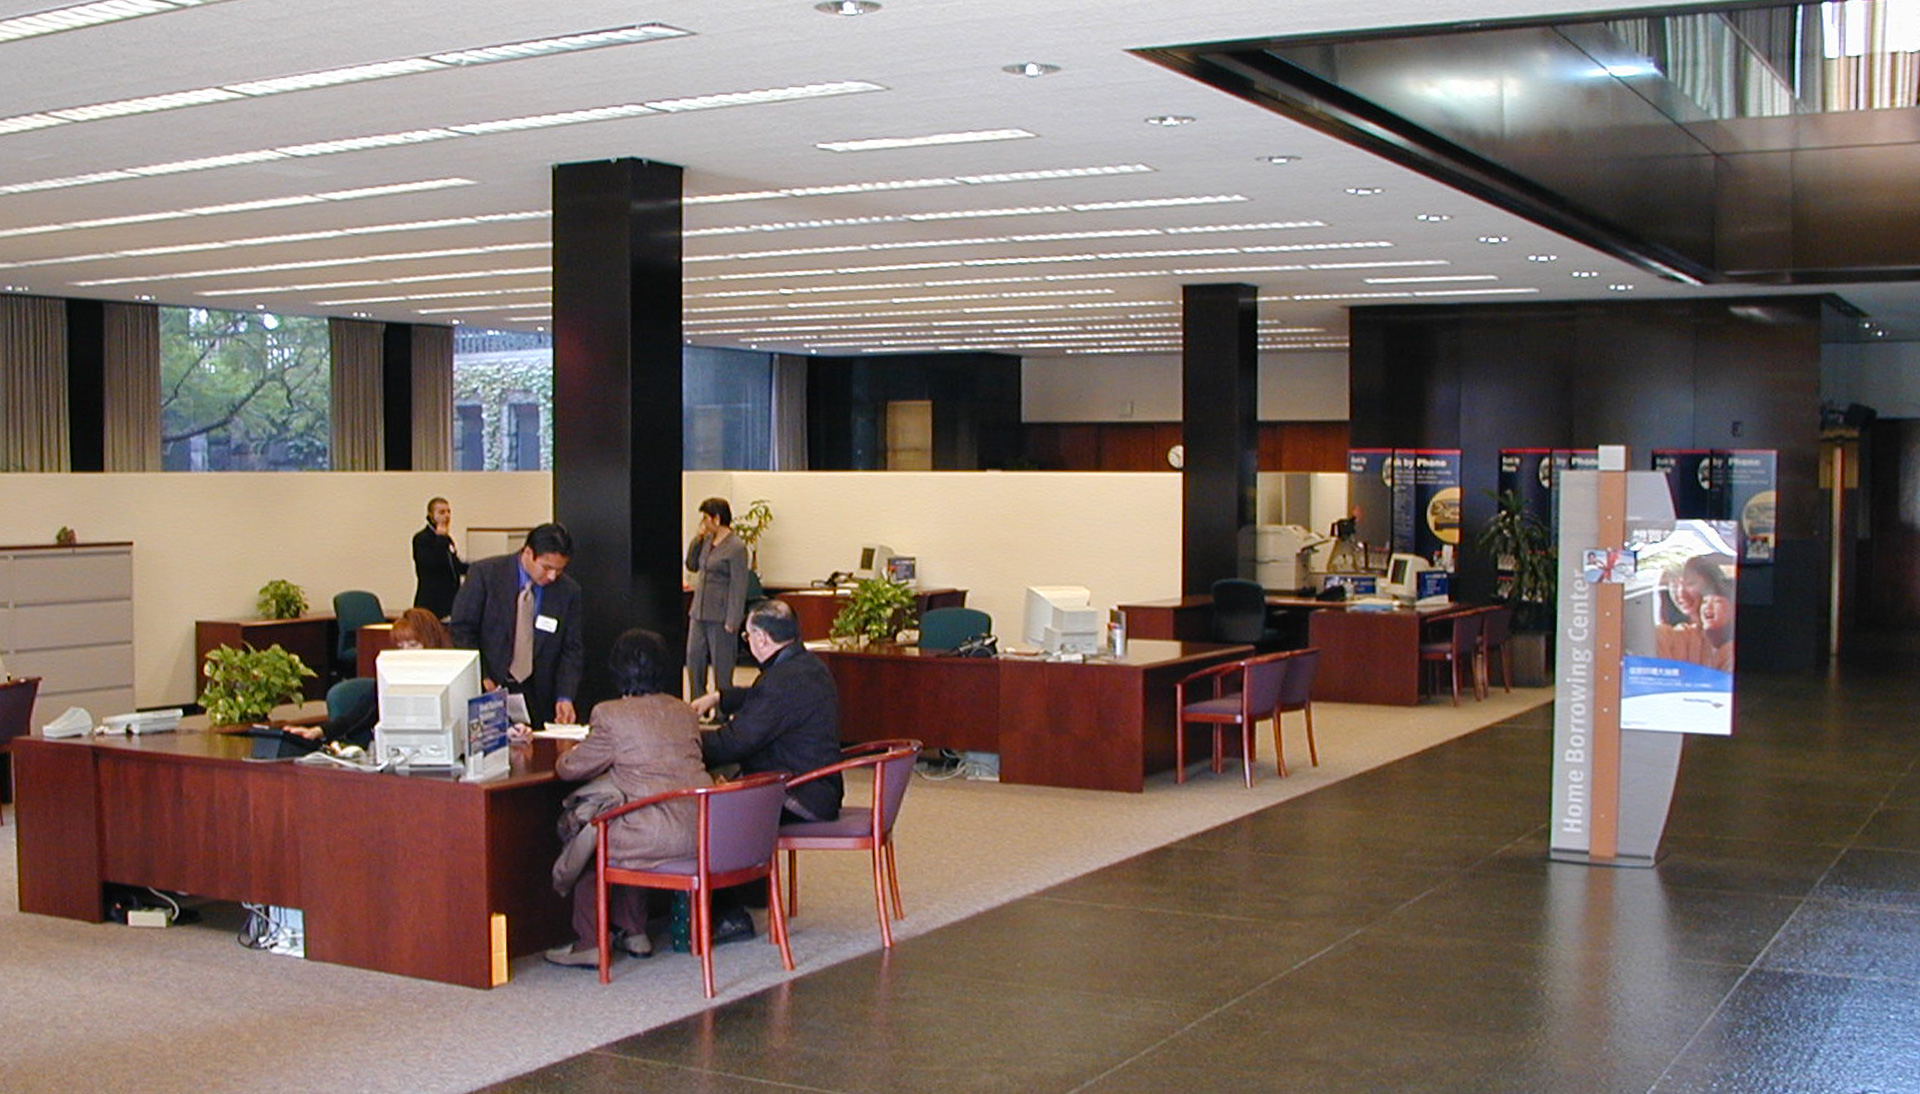 Architectural Design Projects - Commercial Bank